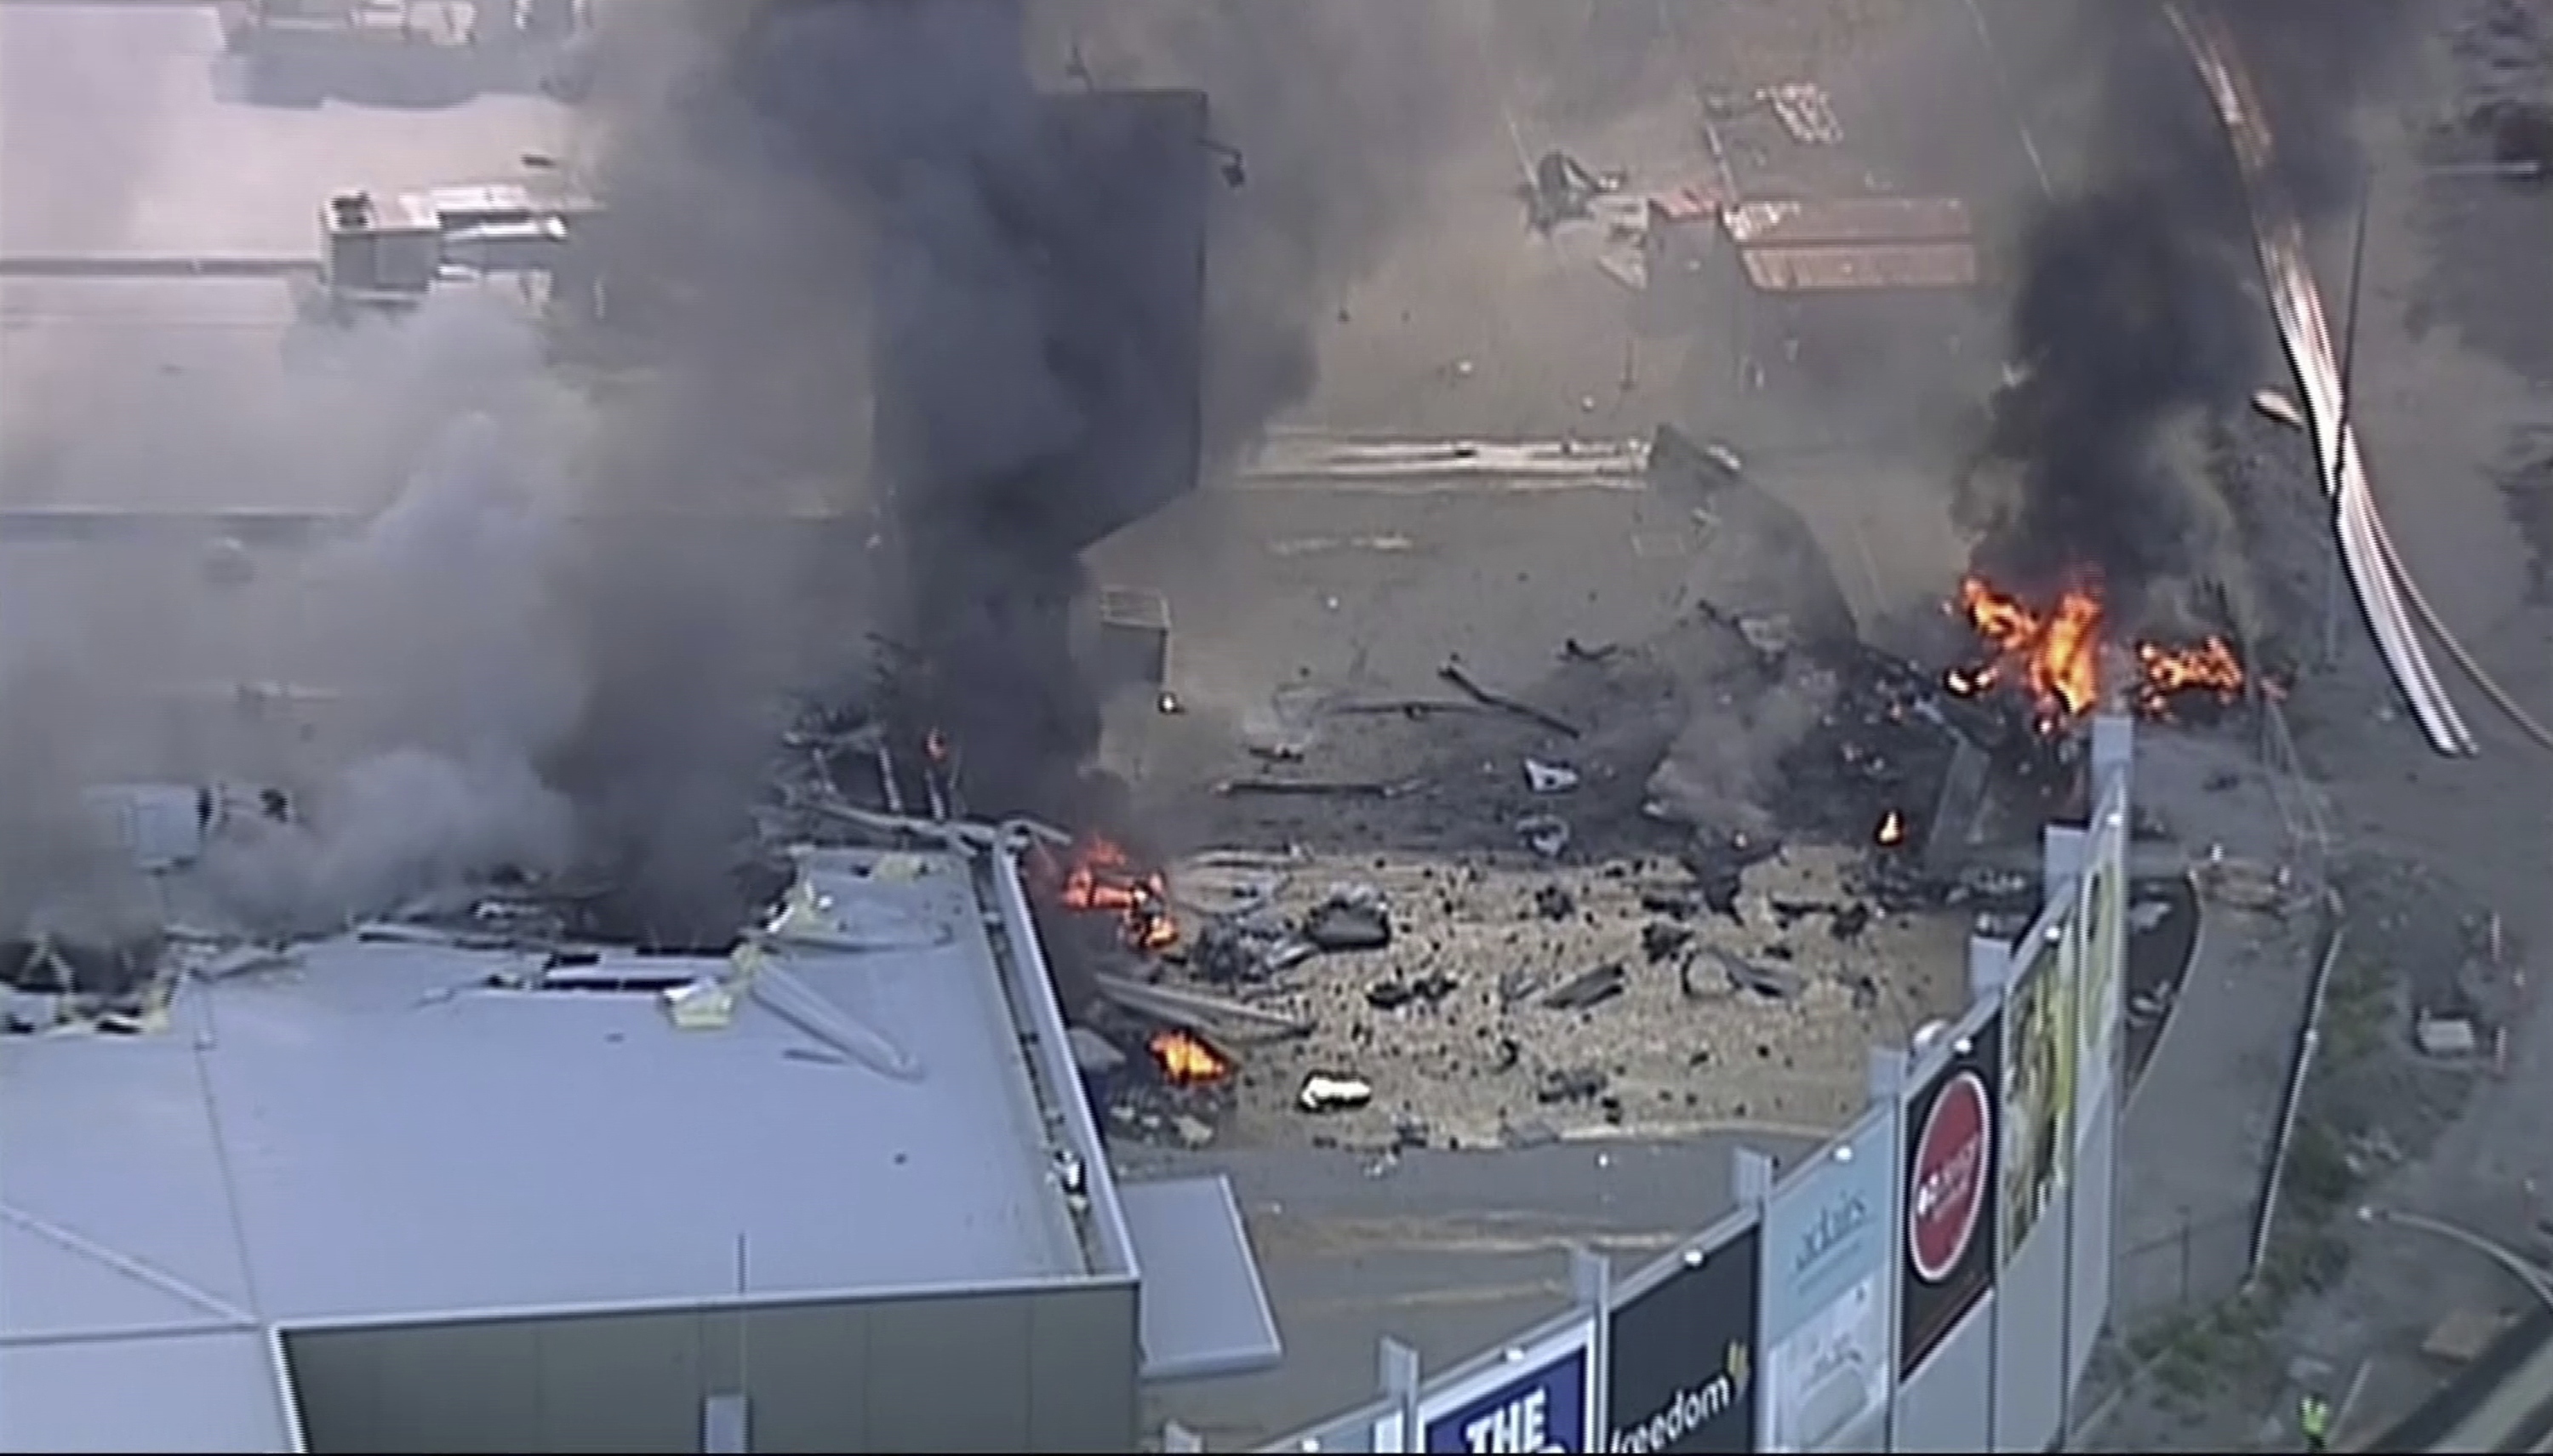 Five people--four passengers and a pilot--were killed in a plane crash early Monday morning in Melbourne, Australia.